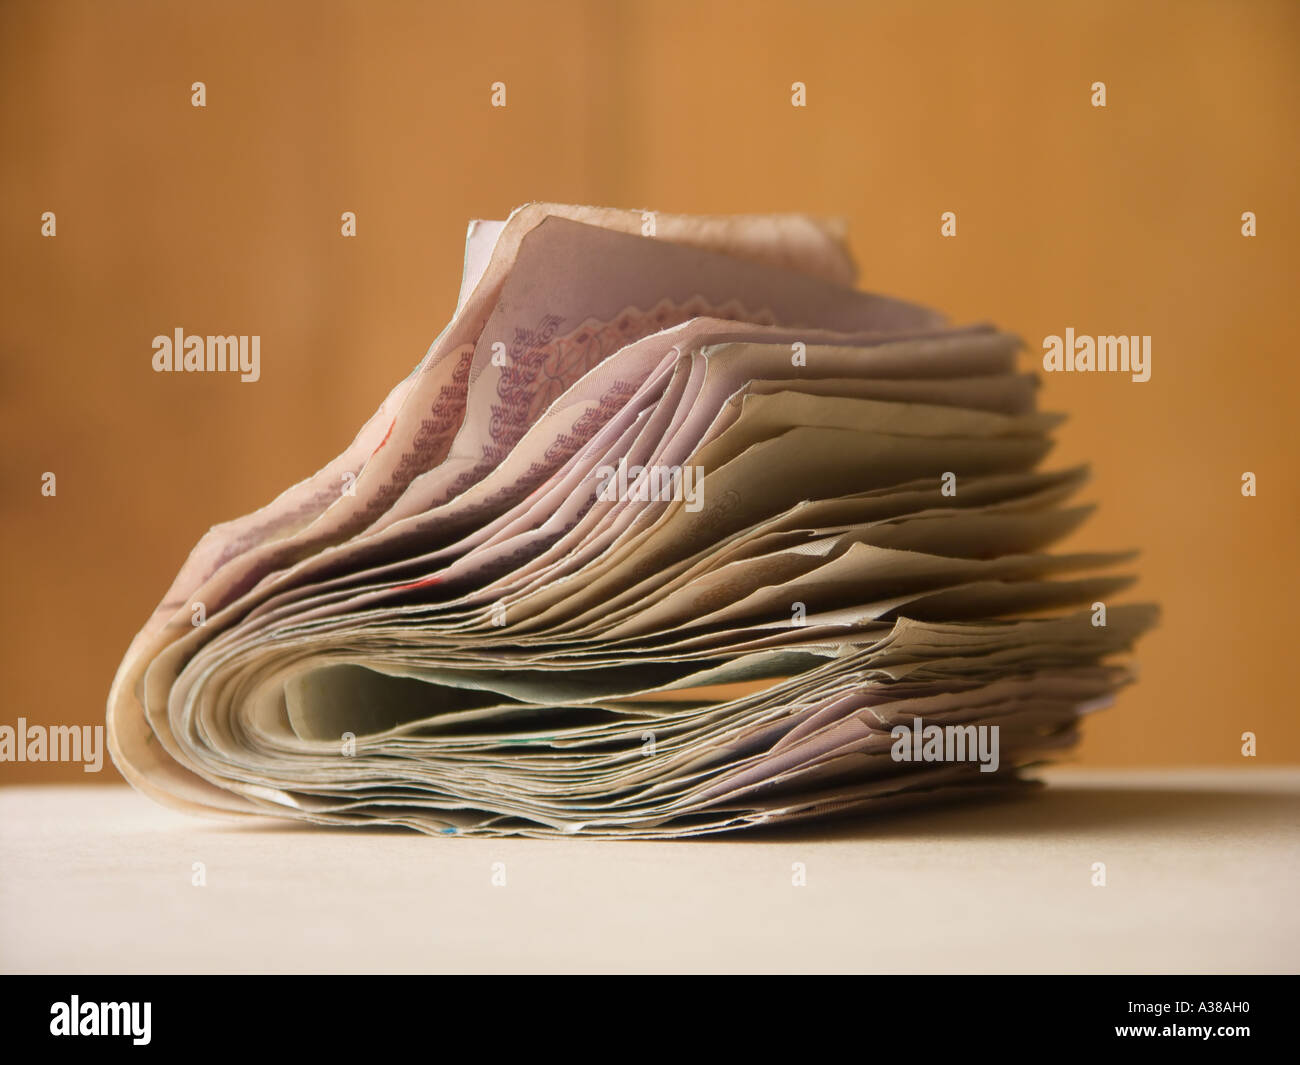 A wad of money - Stock Image